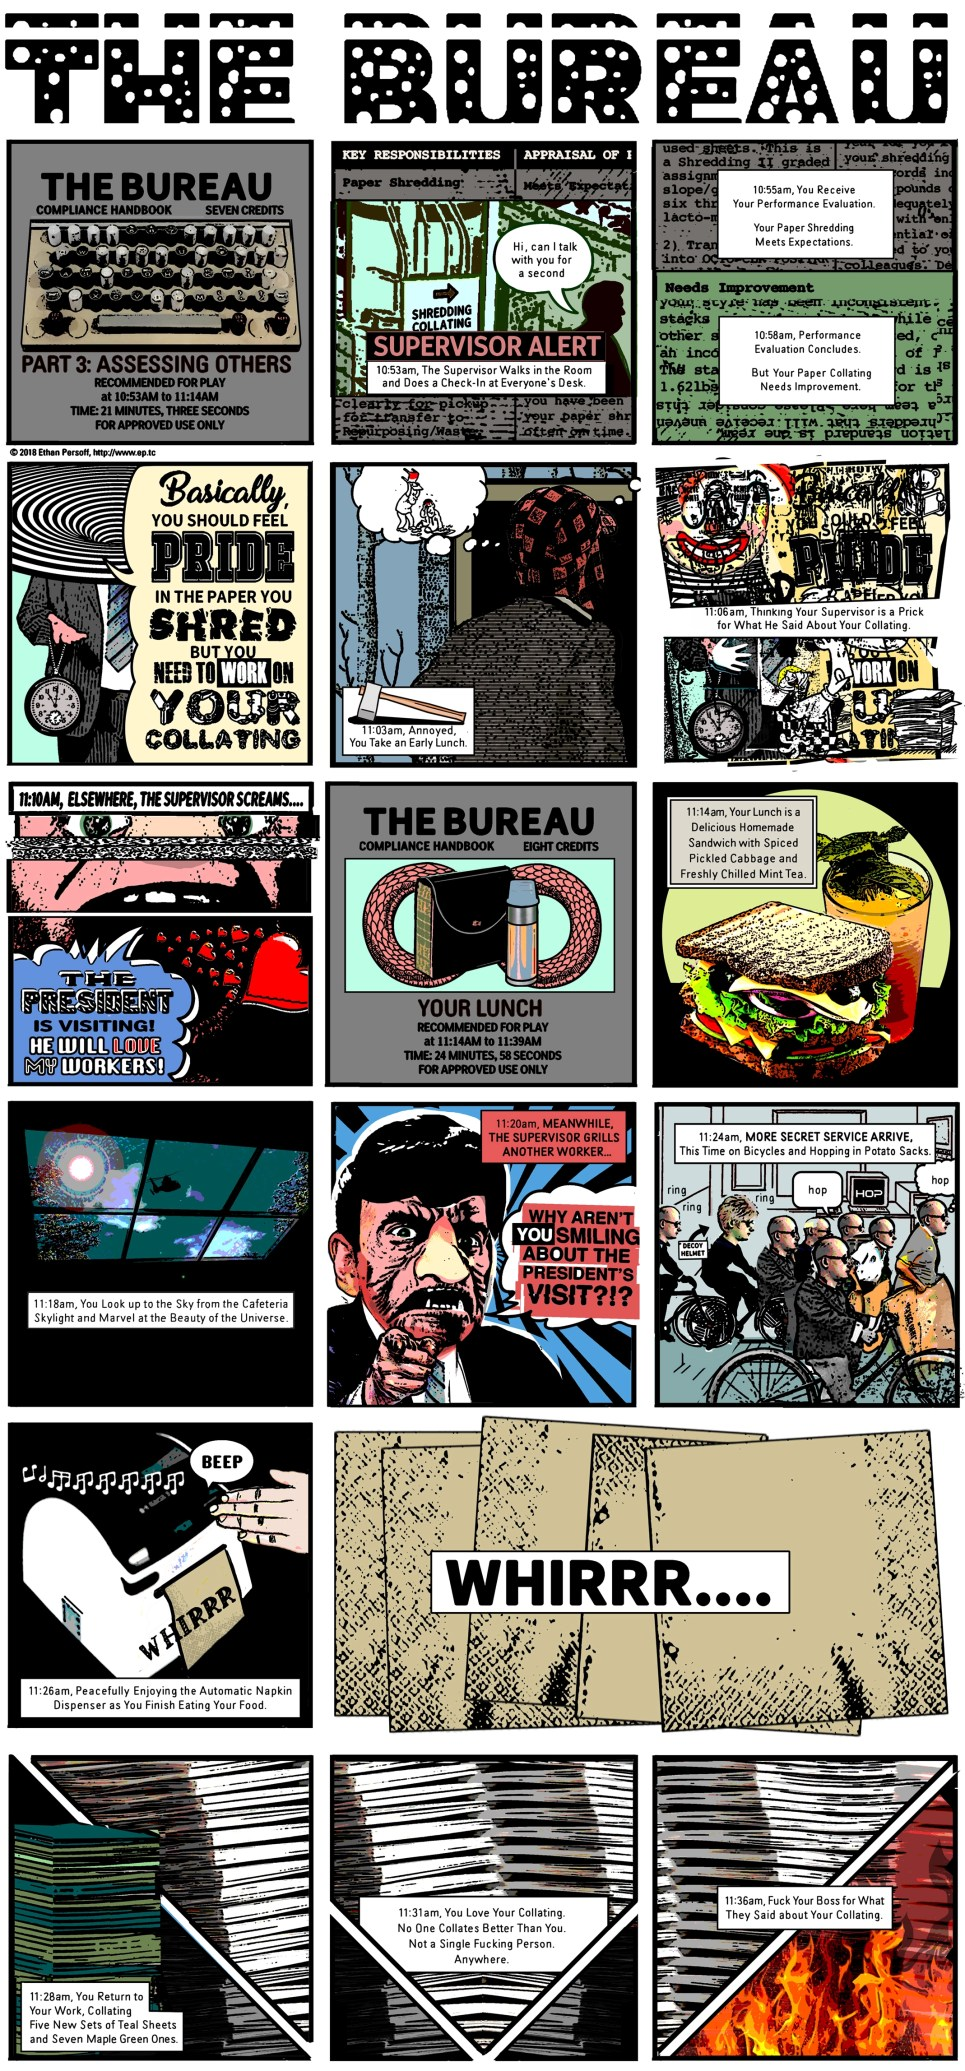 The Bureau by Ethan Persoff - Part Three